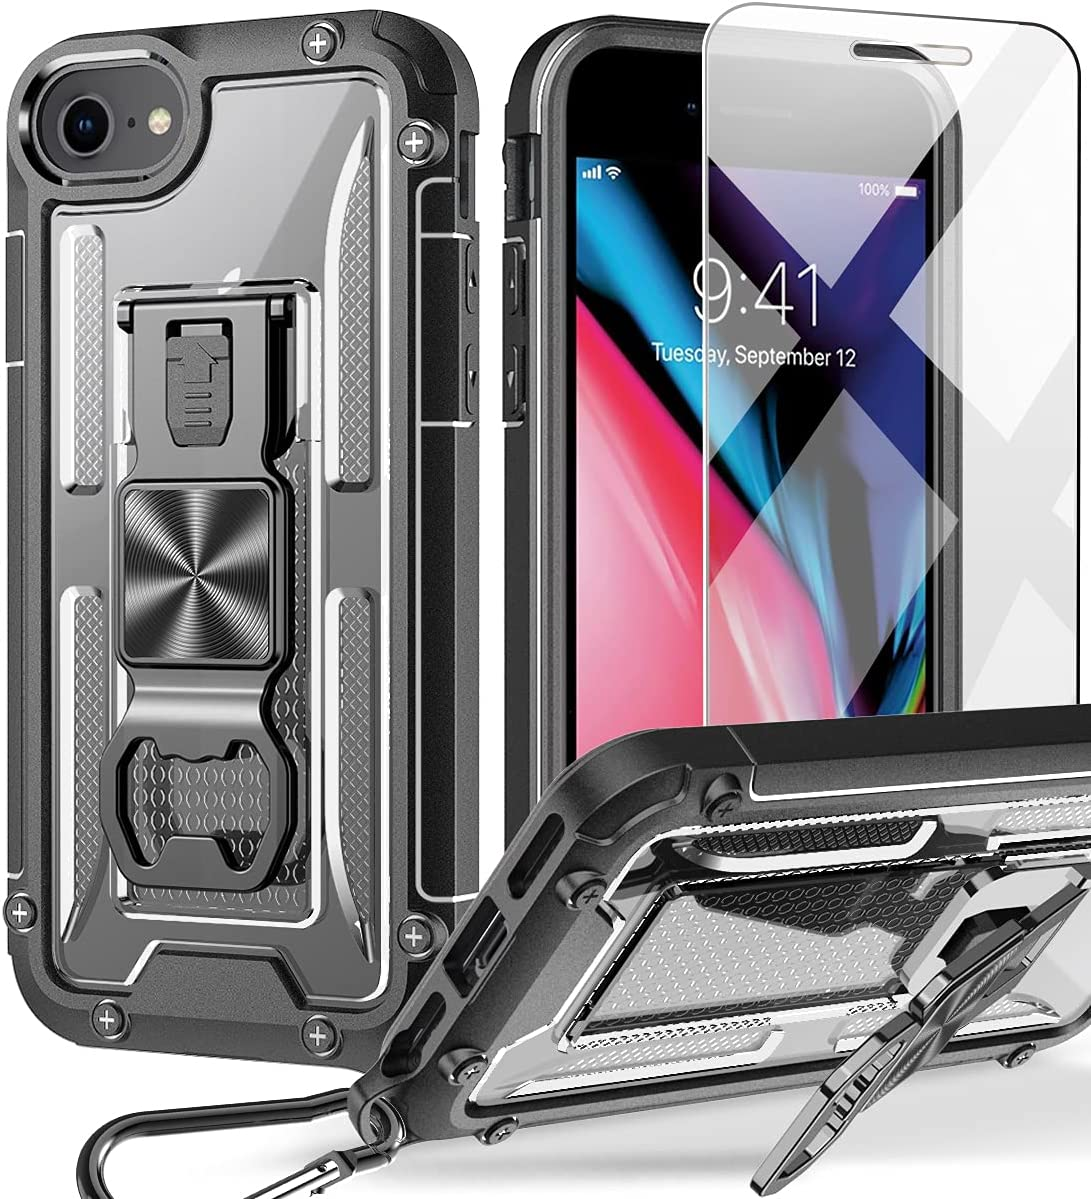 UMIONE Case for iPhone 8, iPhone 7, iPhone SE 2020, iPhone6/6s, with [Carabiner & Screen Protector], Heavy Duty Military Grade Rugged Phone Protective Case with Kickstand for iPhone 6/6s/7/8/SE